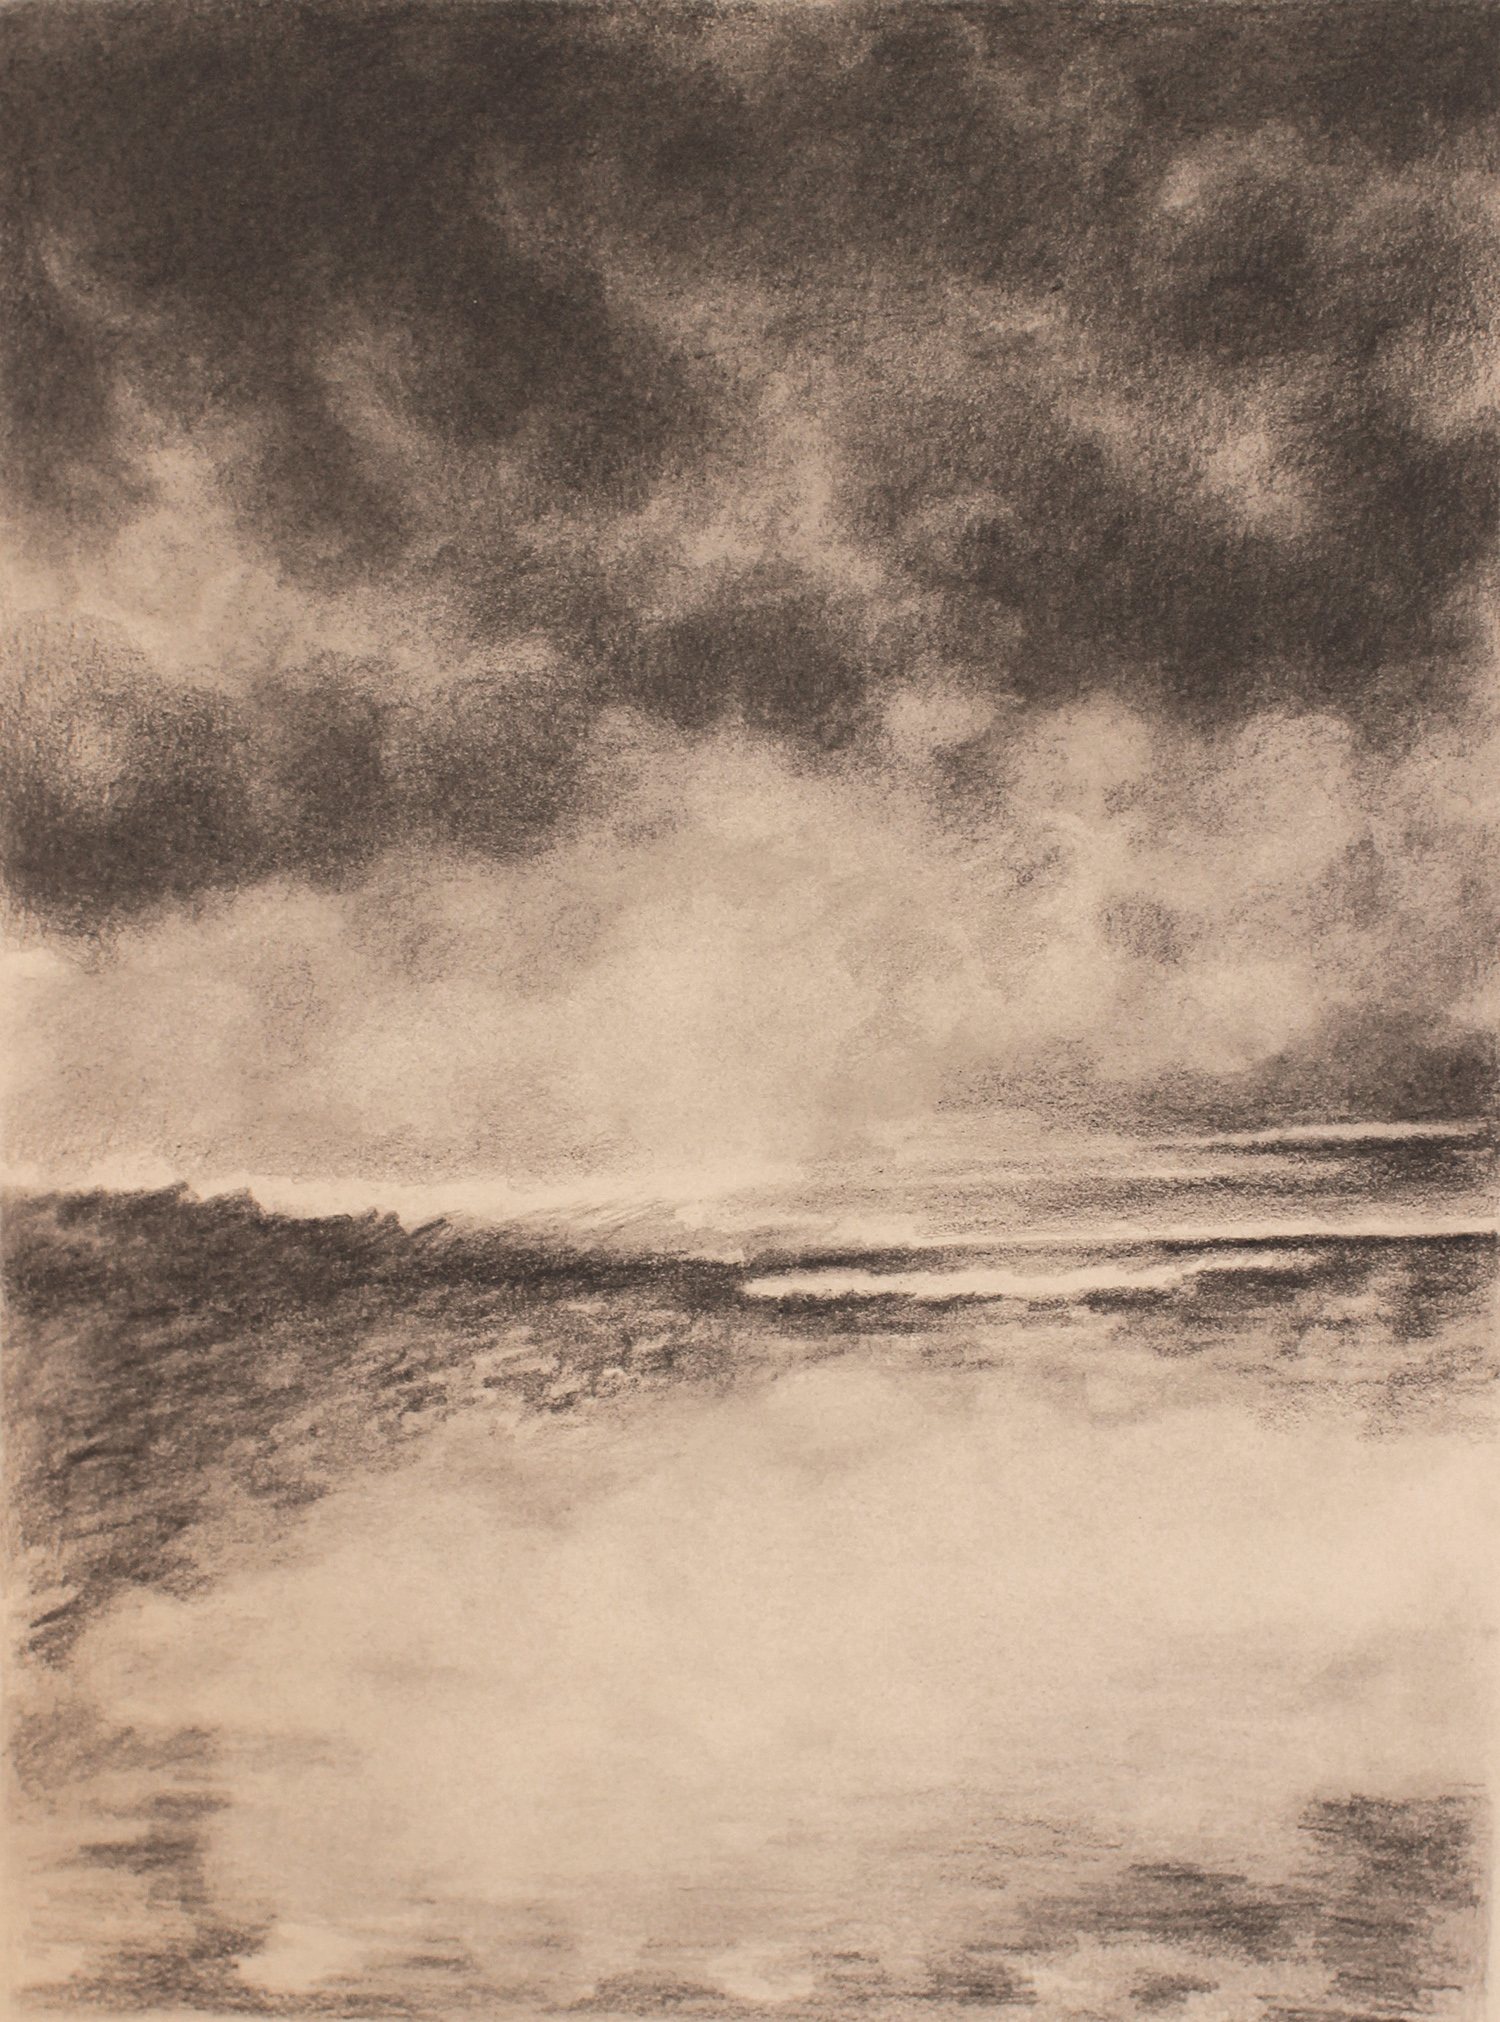 desert (iraq) 3, 2017, 10 x 15 inches, graphite on paper